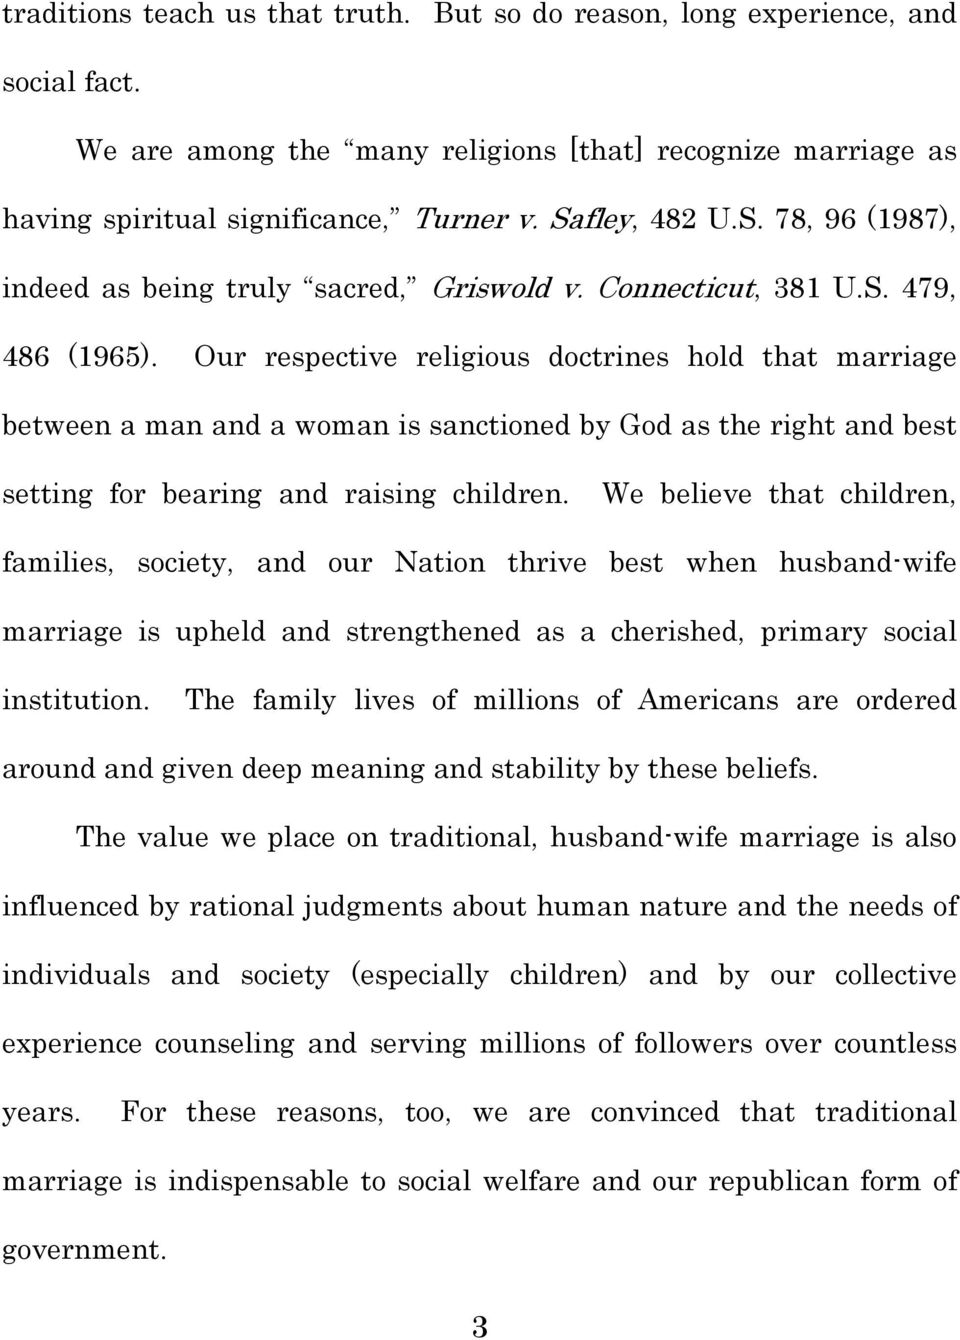 Our respective religious doctrines hold that marriage between a man and a woman is sanctioned by God as the right and best setting for bearing and raising children.